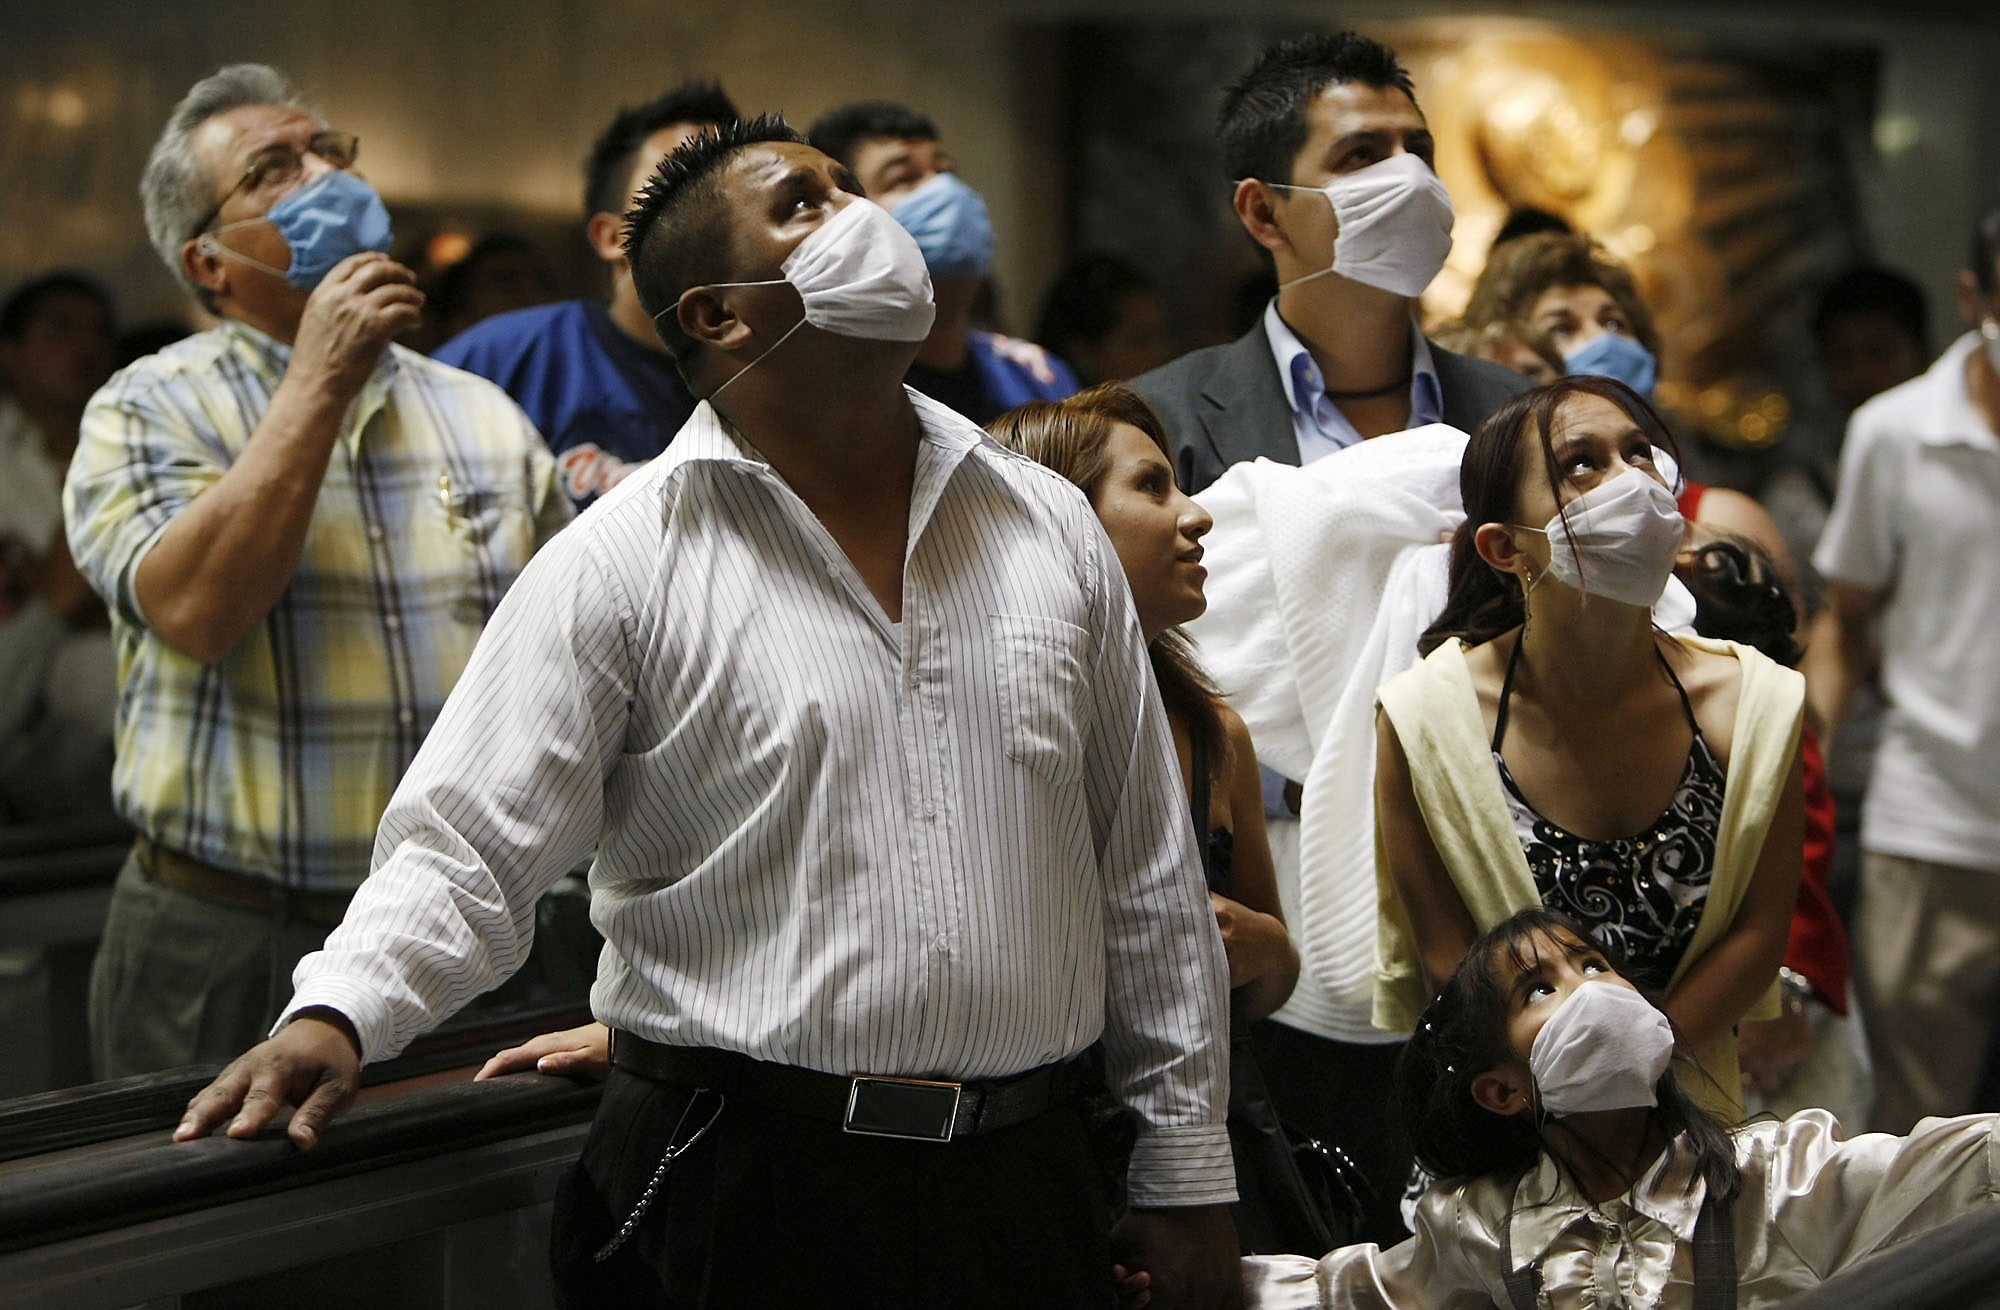 People wearing protective masks pay their respects to Our Lady of Guadalupe as they pass over a walkway under Guadalupe's shrine at the Basilica de Guadalupe in Mexico City, on Sunday, April 26, 2009. (AP Photo)